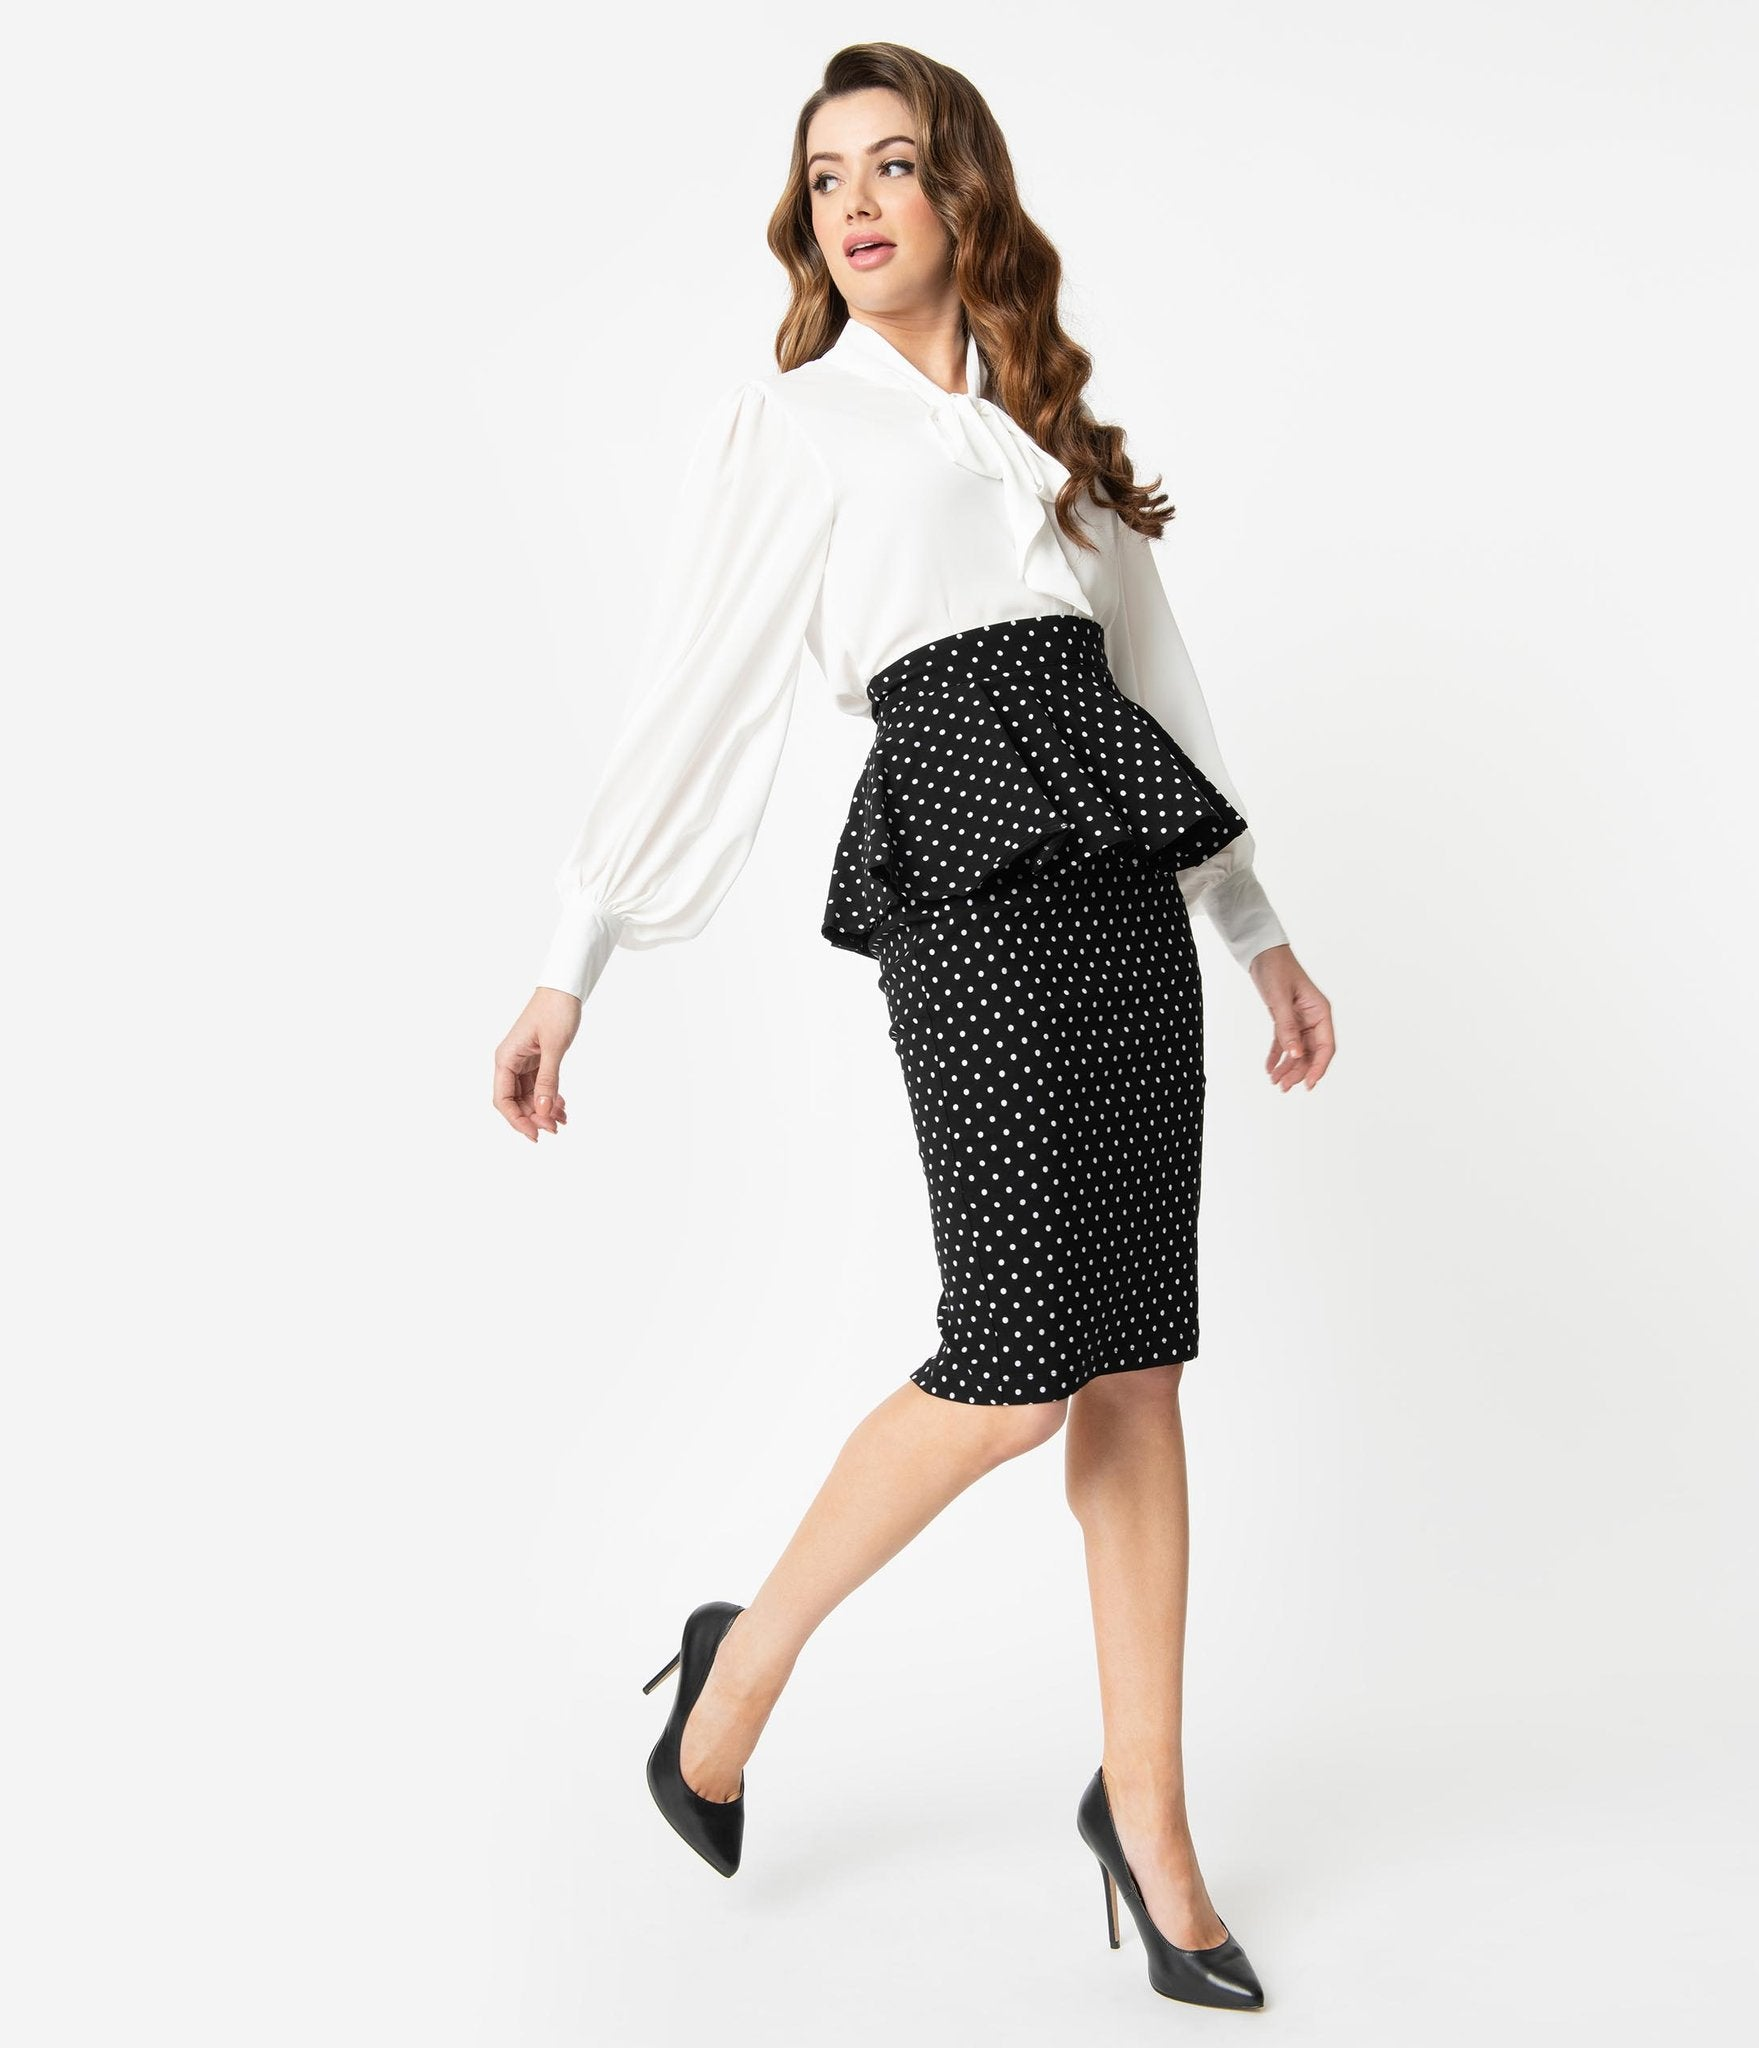 Black & White Pin Dot Peplum Pencil Skirt by Unique Vintage